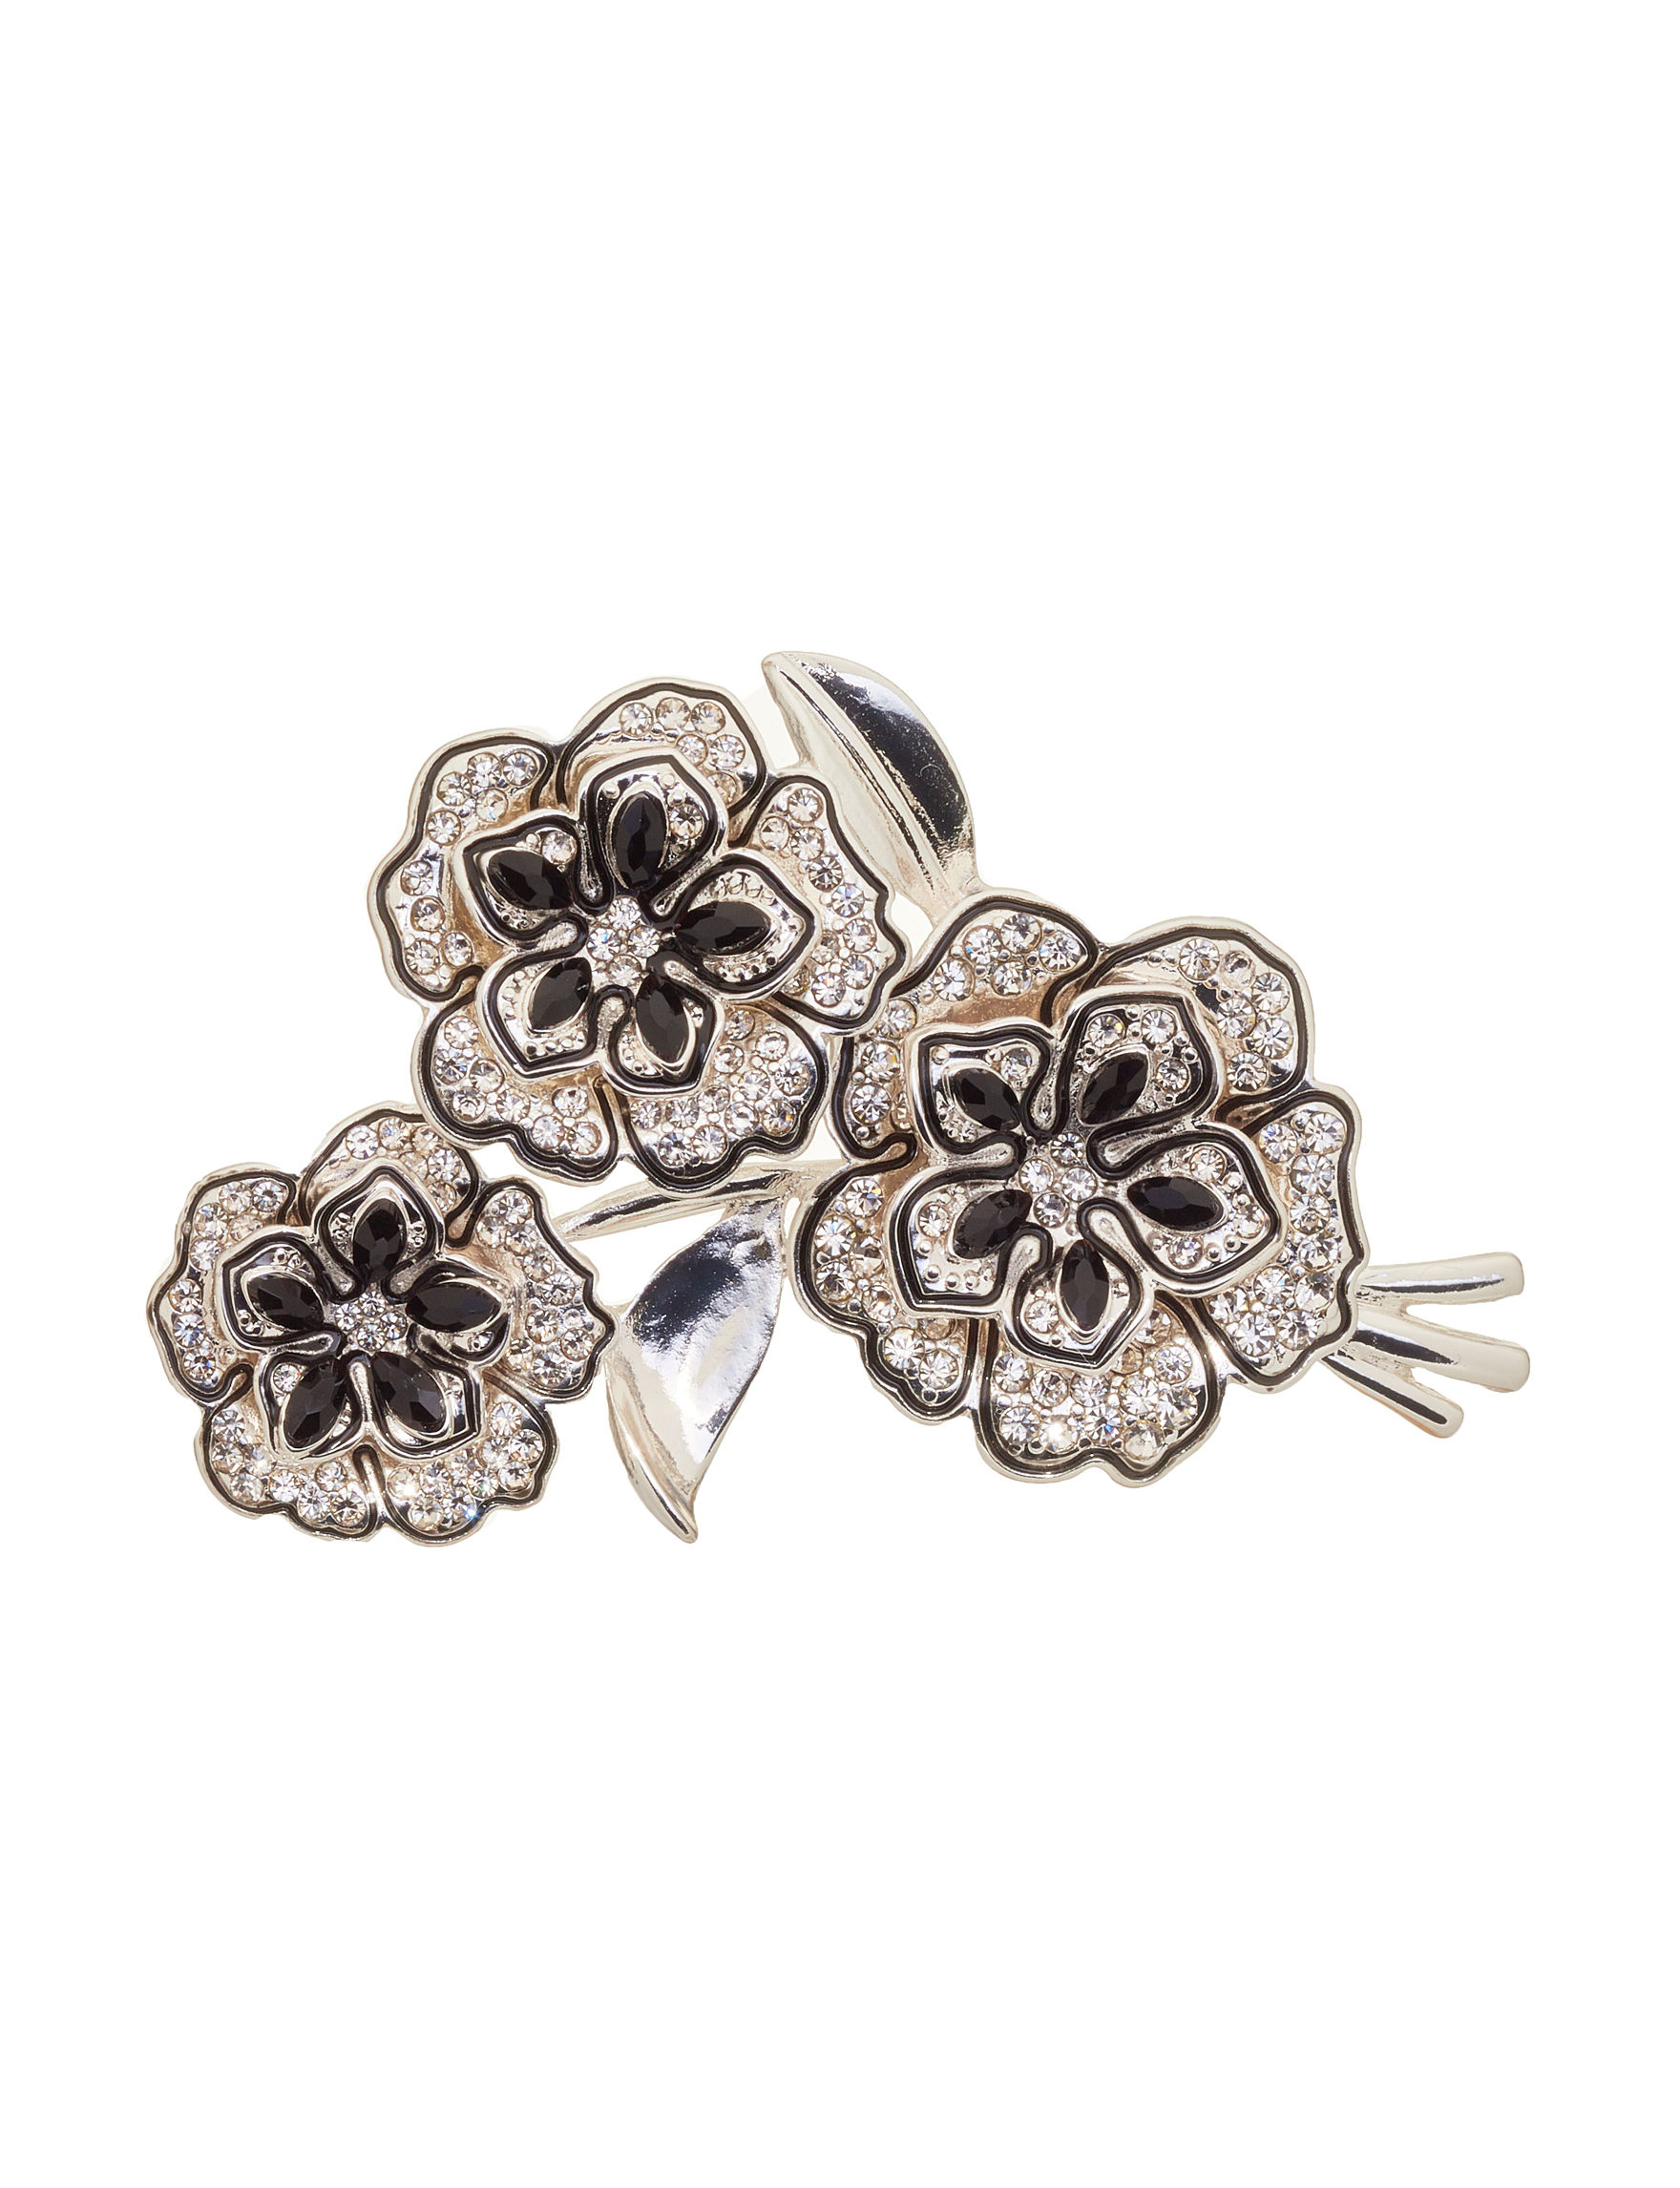 Napier Silver / Crystal Pins Fashion Jewelry